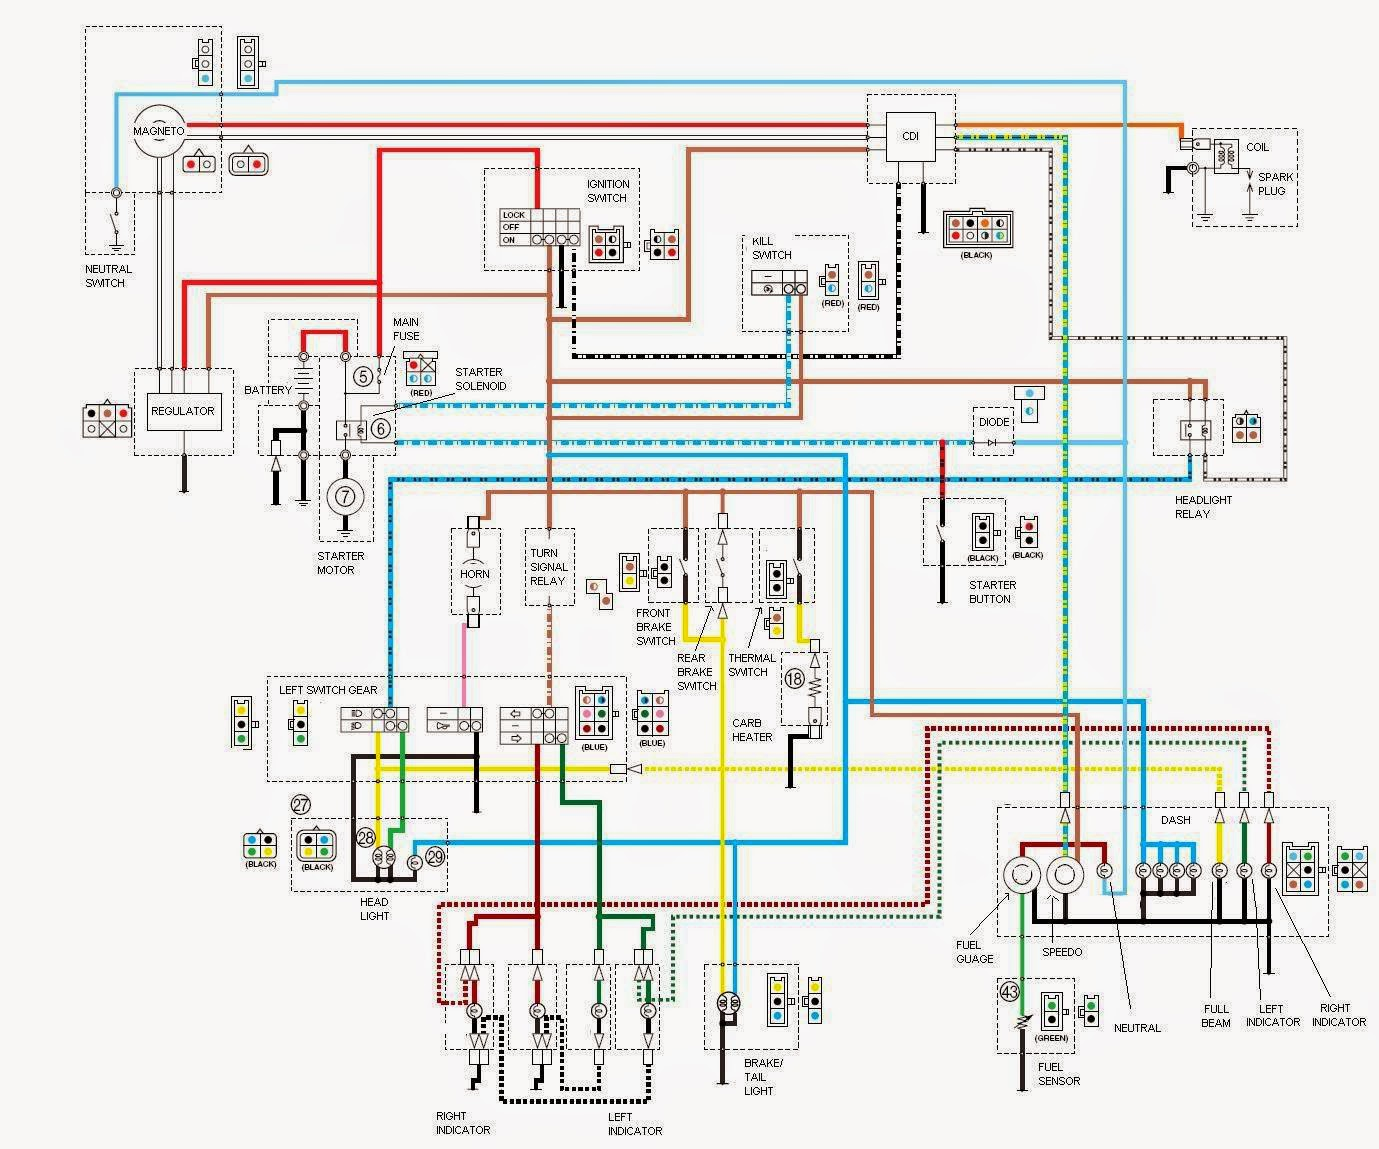 Wiring diagram motor vixion residential electrical symbols wiring diagram yamaha vixion free download wiring diagram wiring rh color castles com wiring diagram speedometer new vixion wiring diagram new vixion cheapraybanclubmaster Image collections